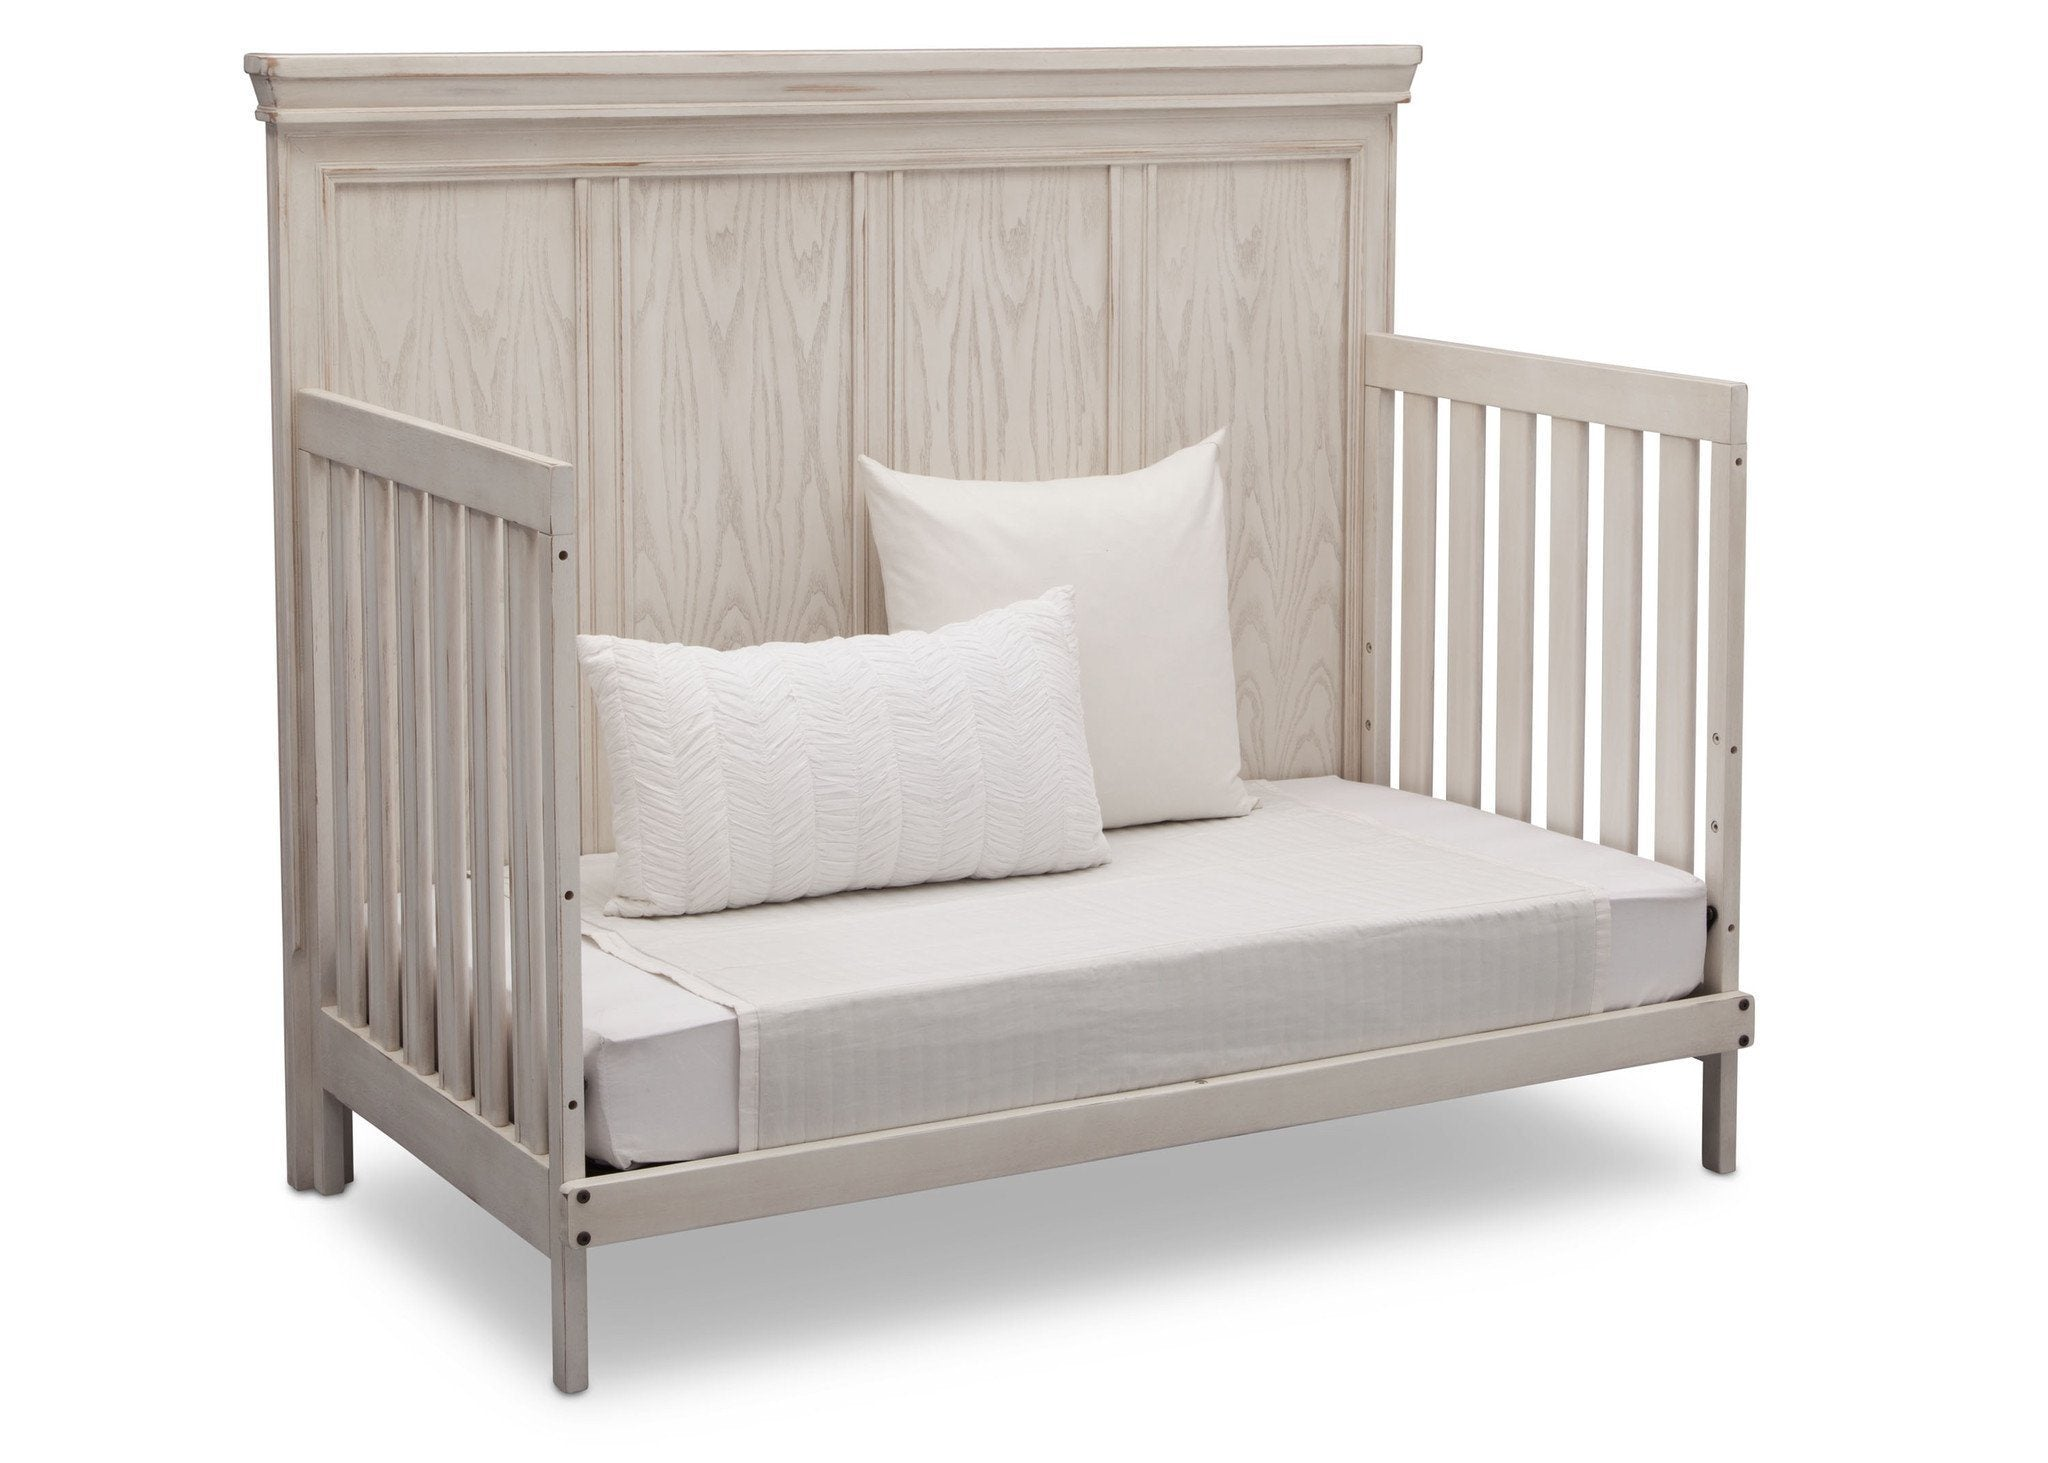 Simmons Kids Antique White (122) Ravello Crib 'N' More, Angled Conversion to DayBed View, b5b